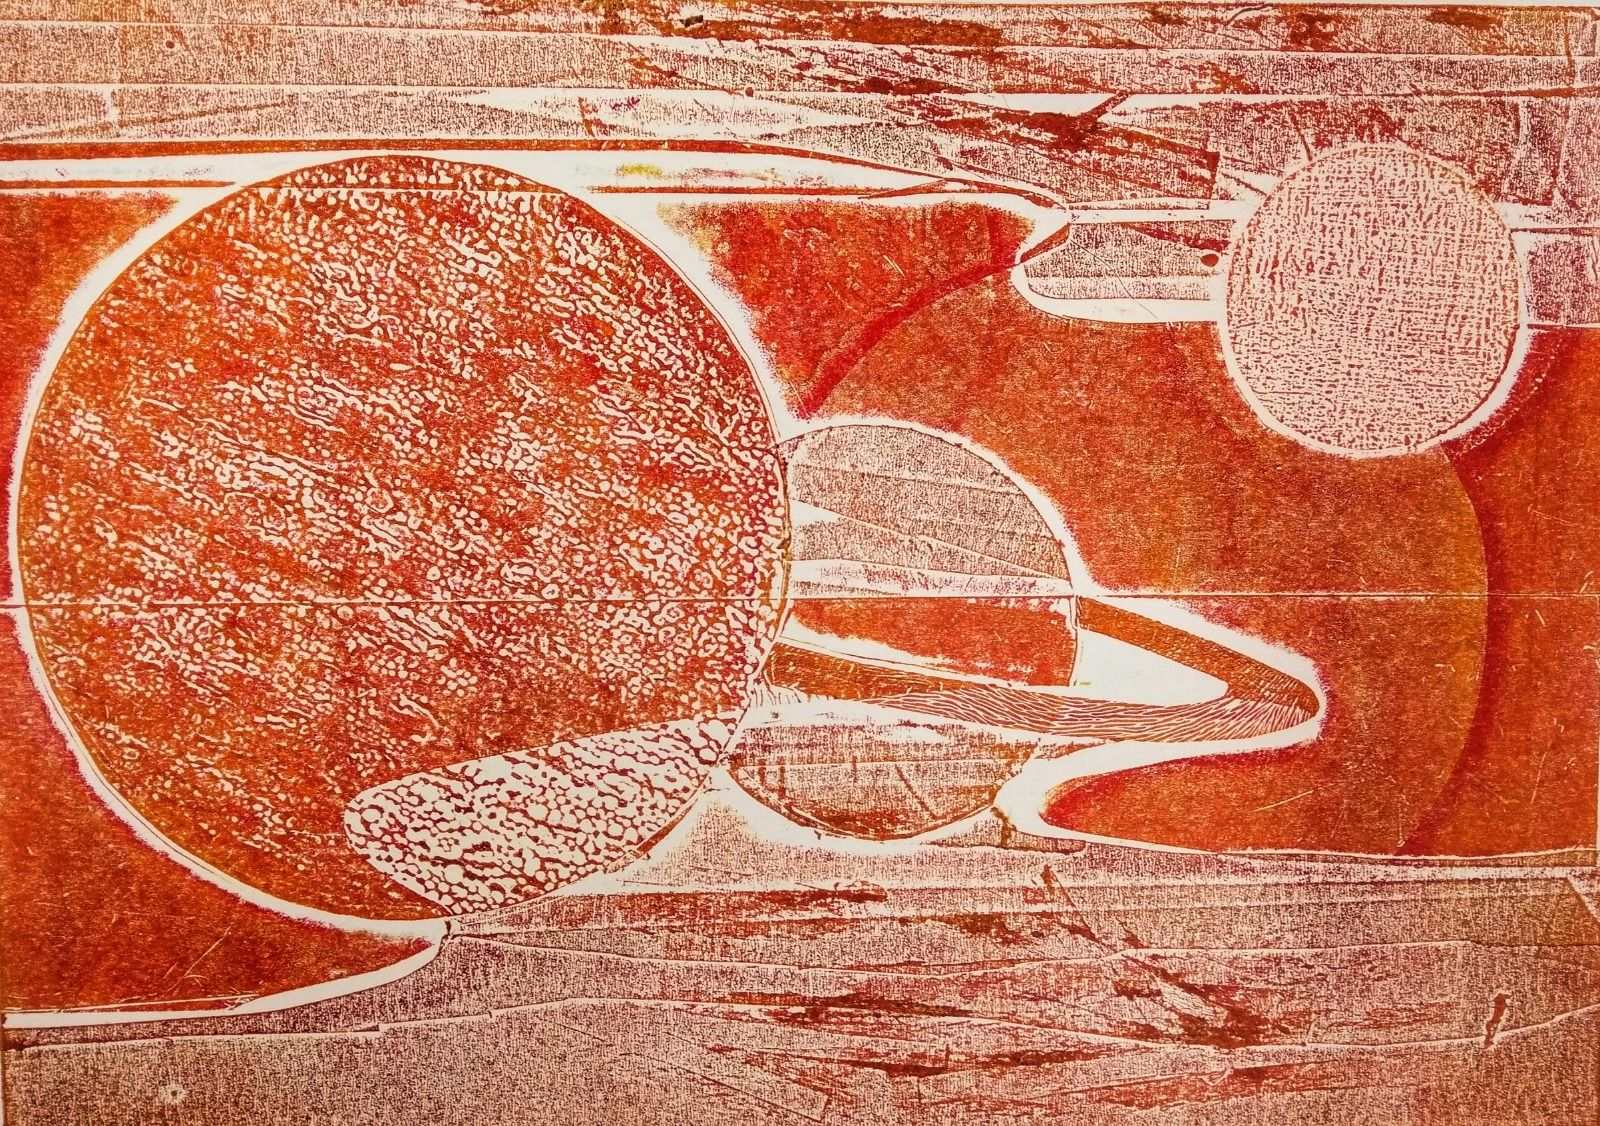 Collagraphy texture detail in orange